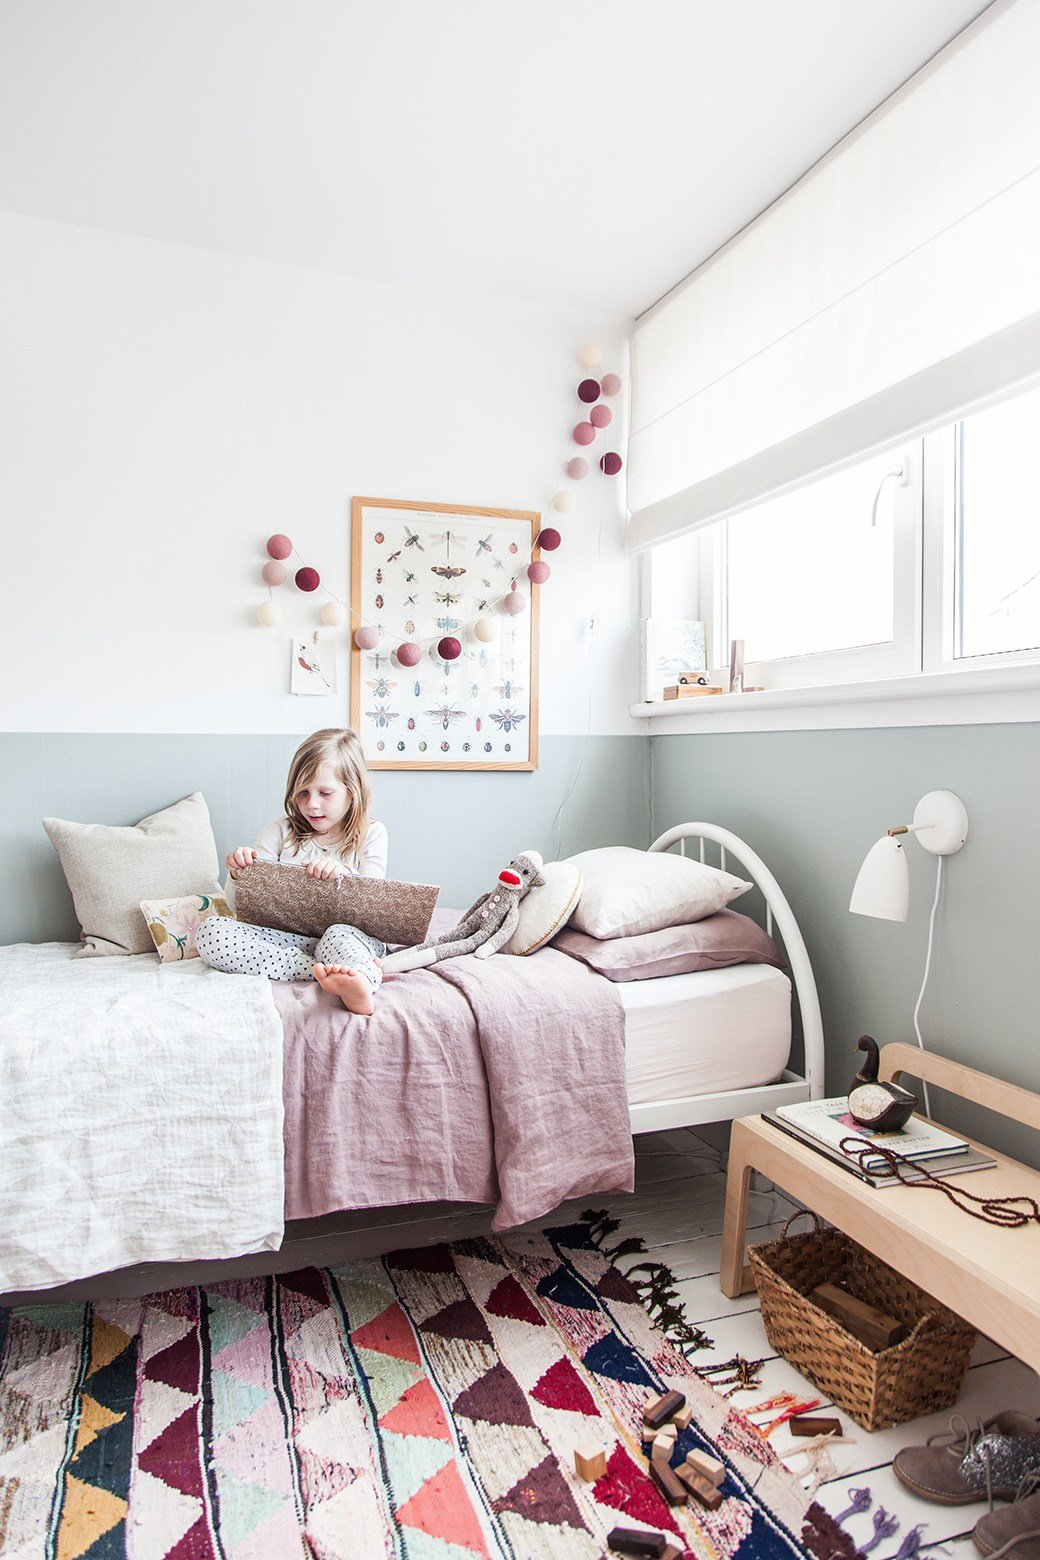 Best Ikea Wardrobe Hack In Charming Little Girl S Bedroom — Decor8 With Pictures